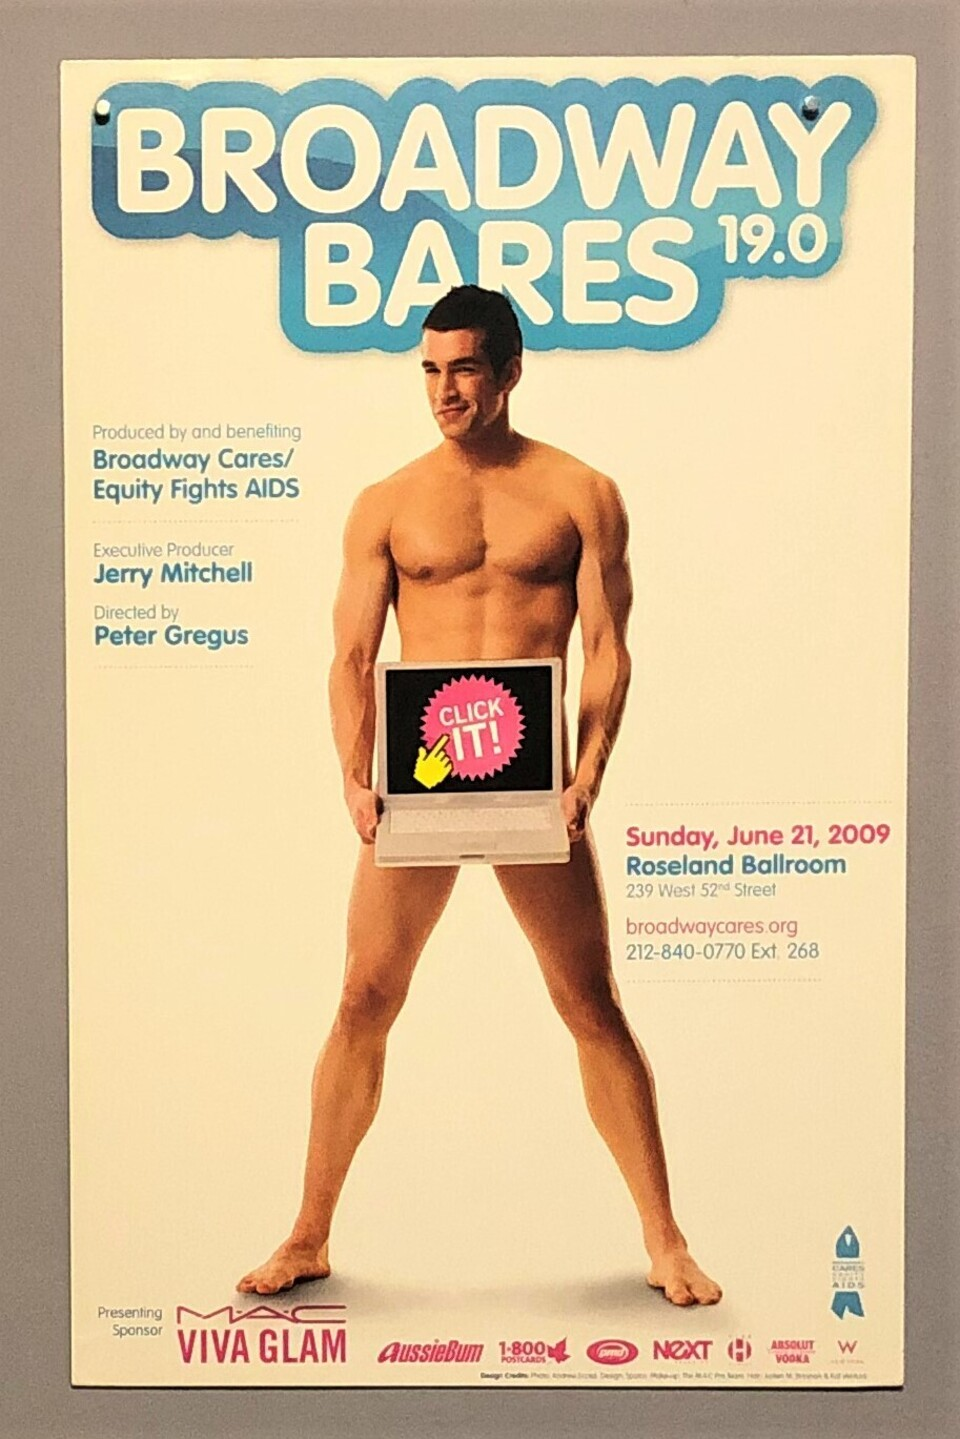 Theater broadway bares 2009